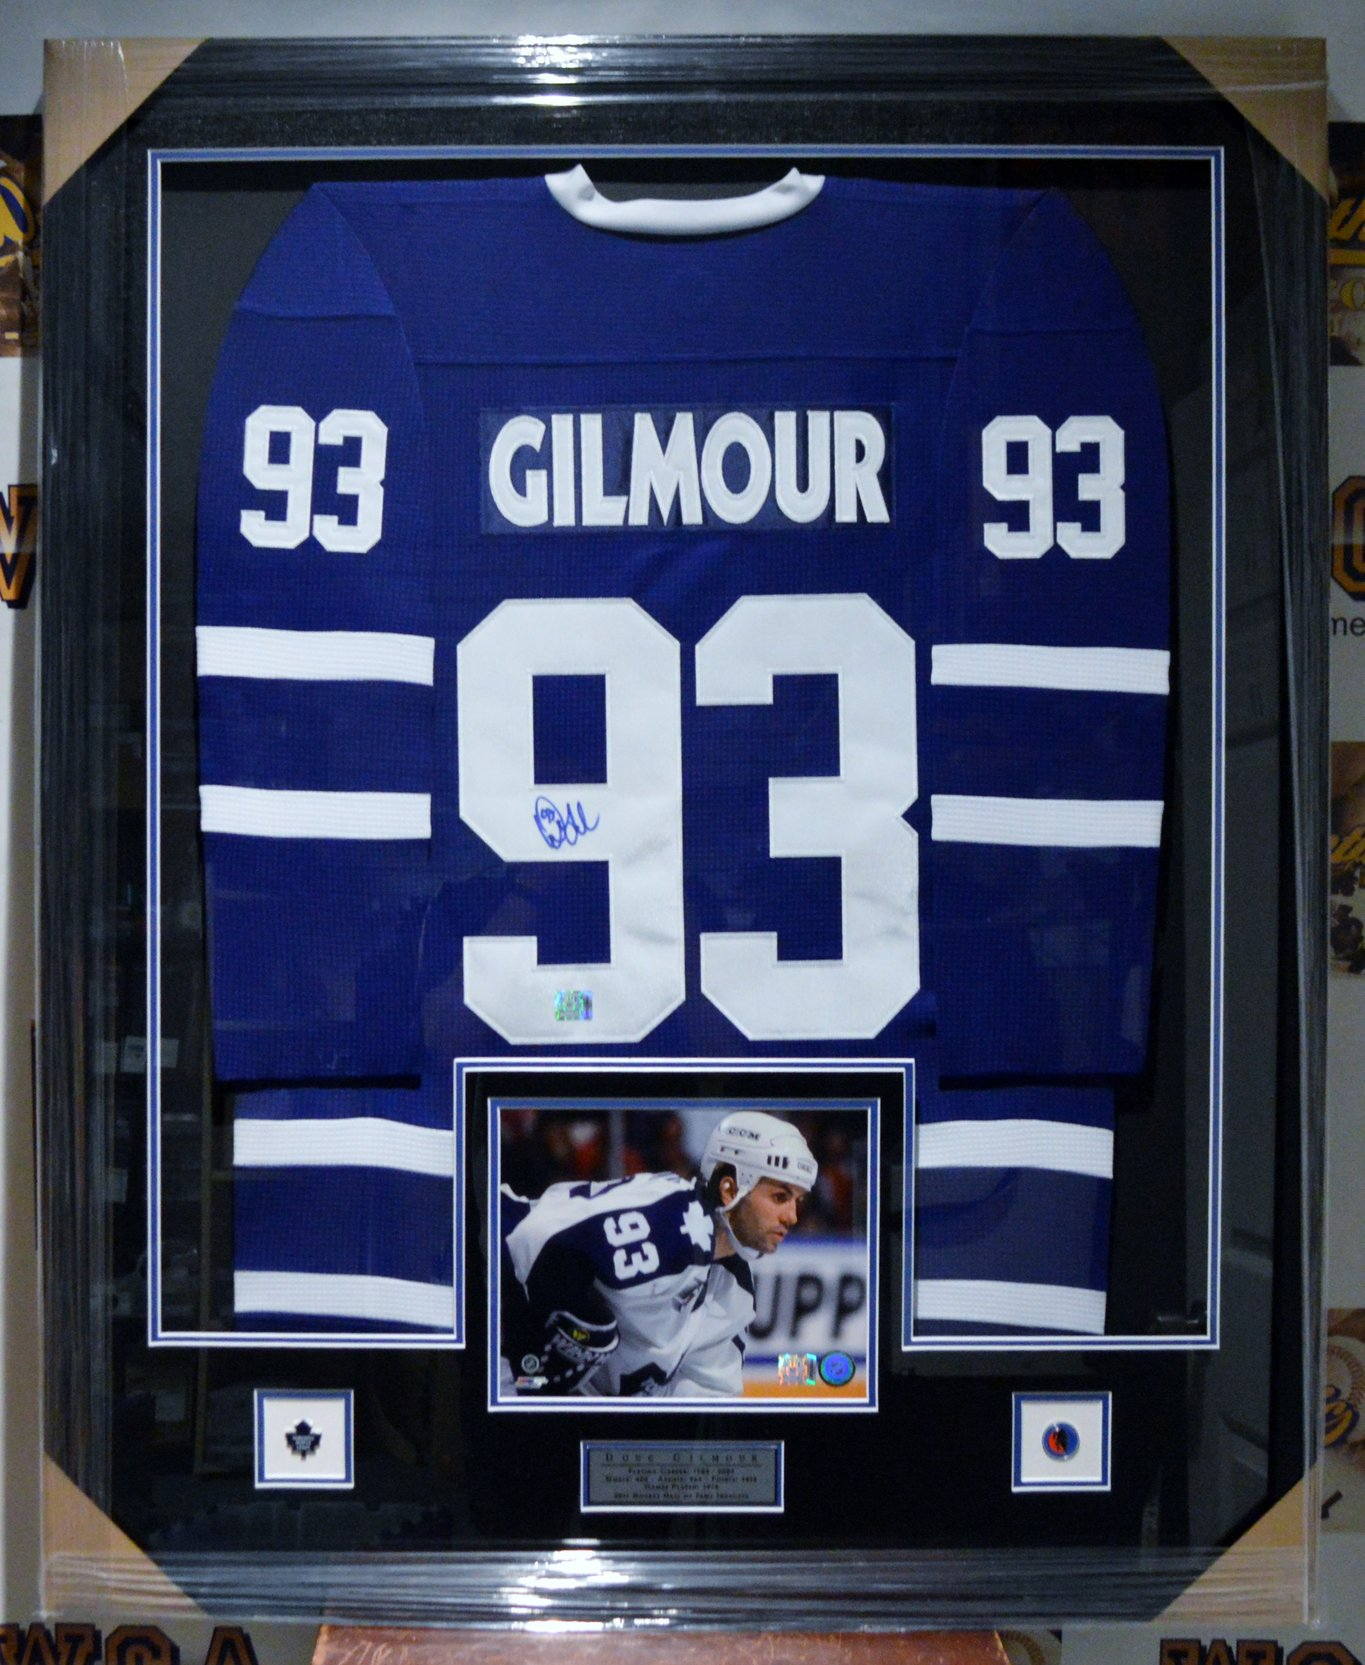 reputable site 84e97 d164a Doug Gilmour Autographed Toronto Maple Leafs Framed Jersey